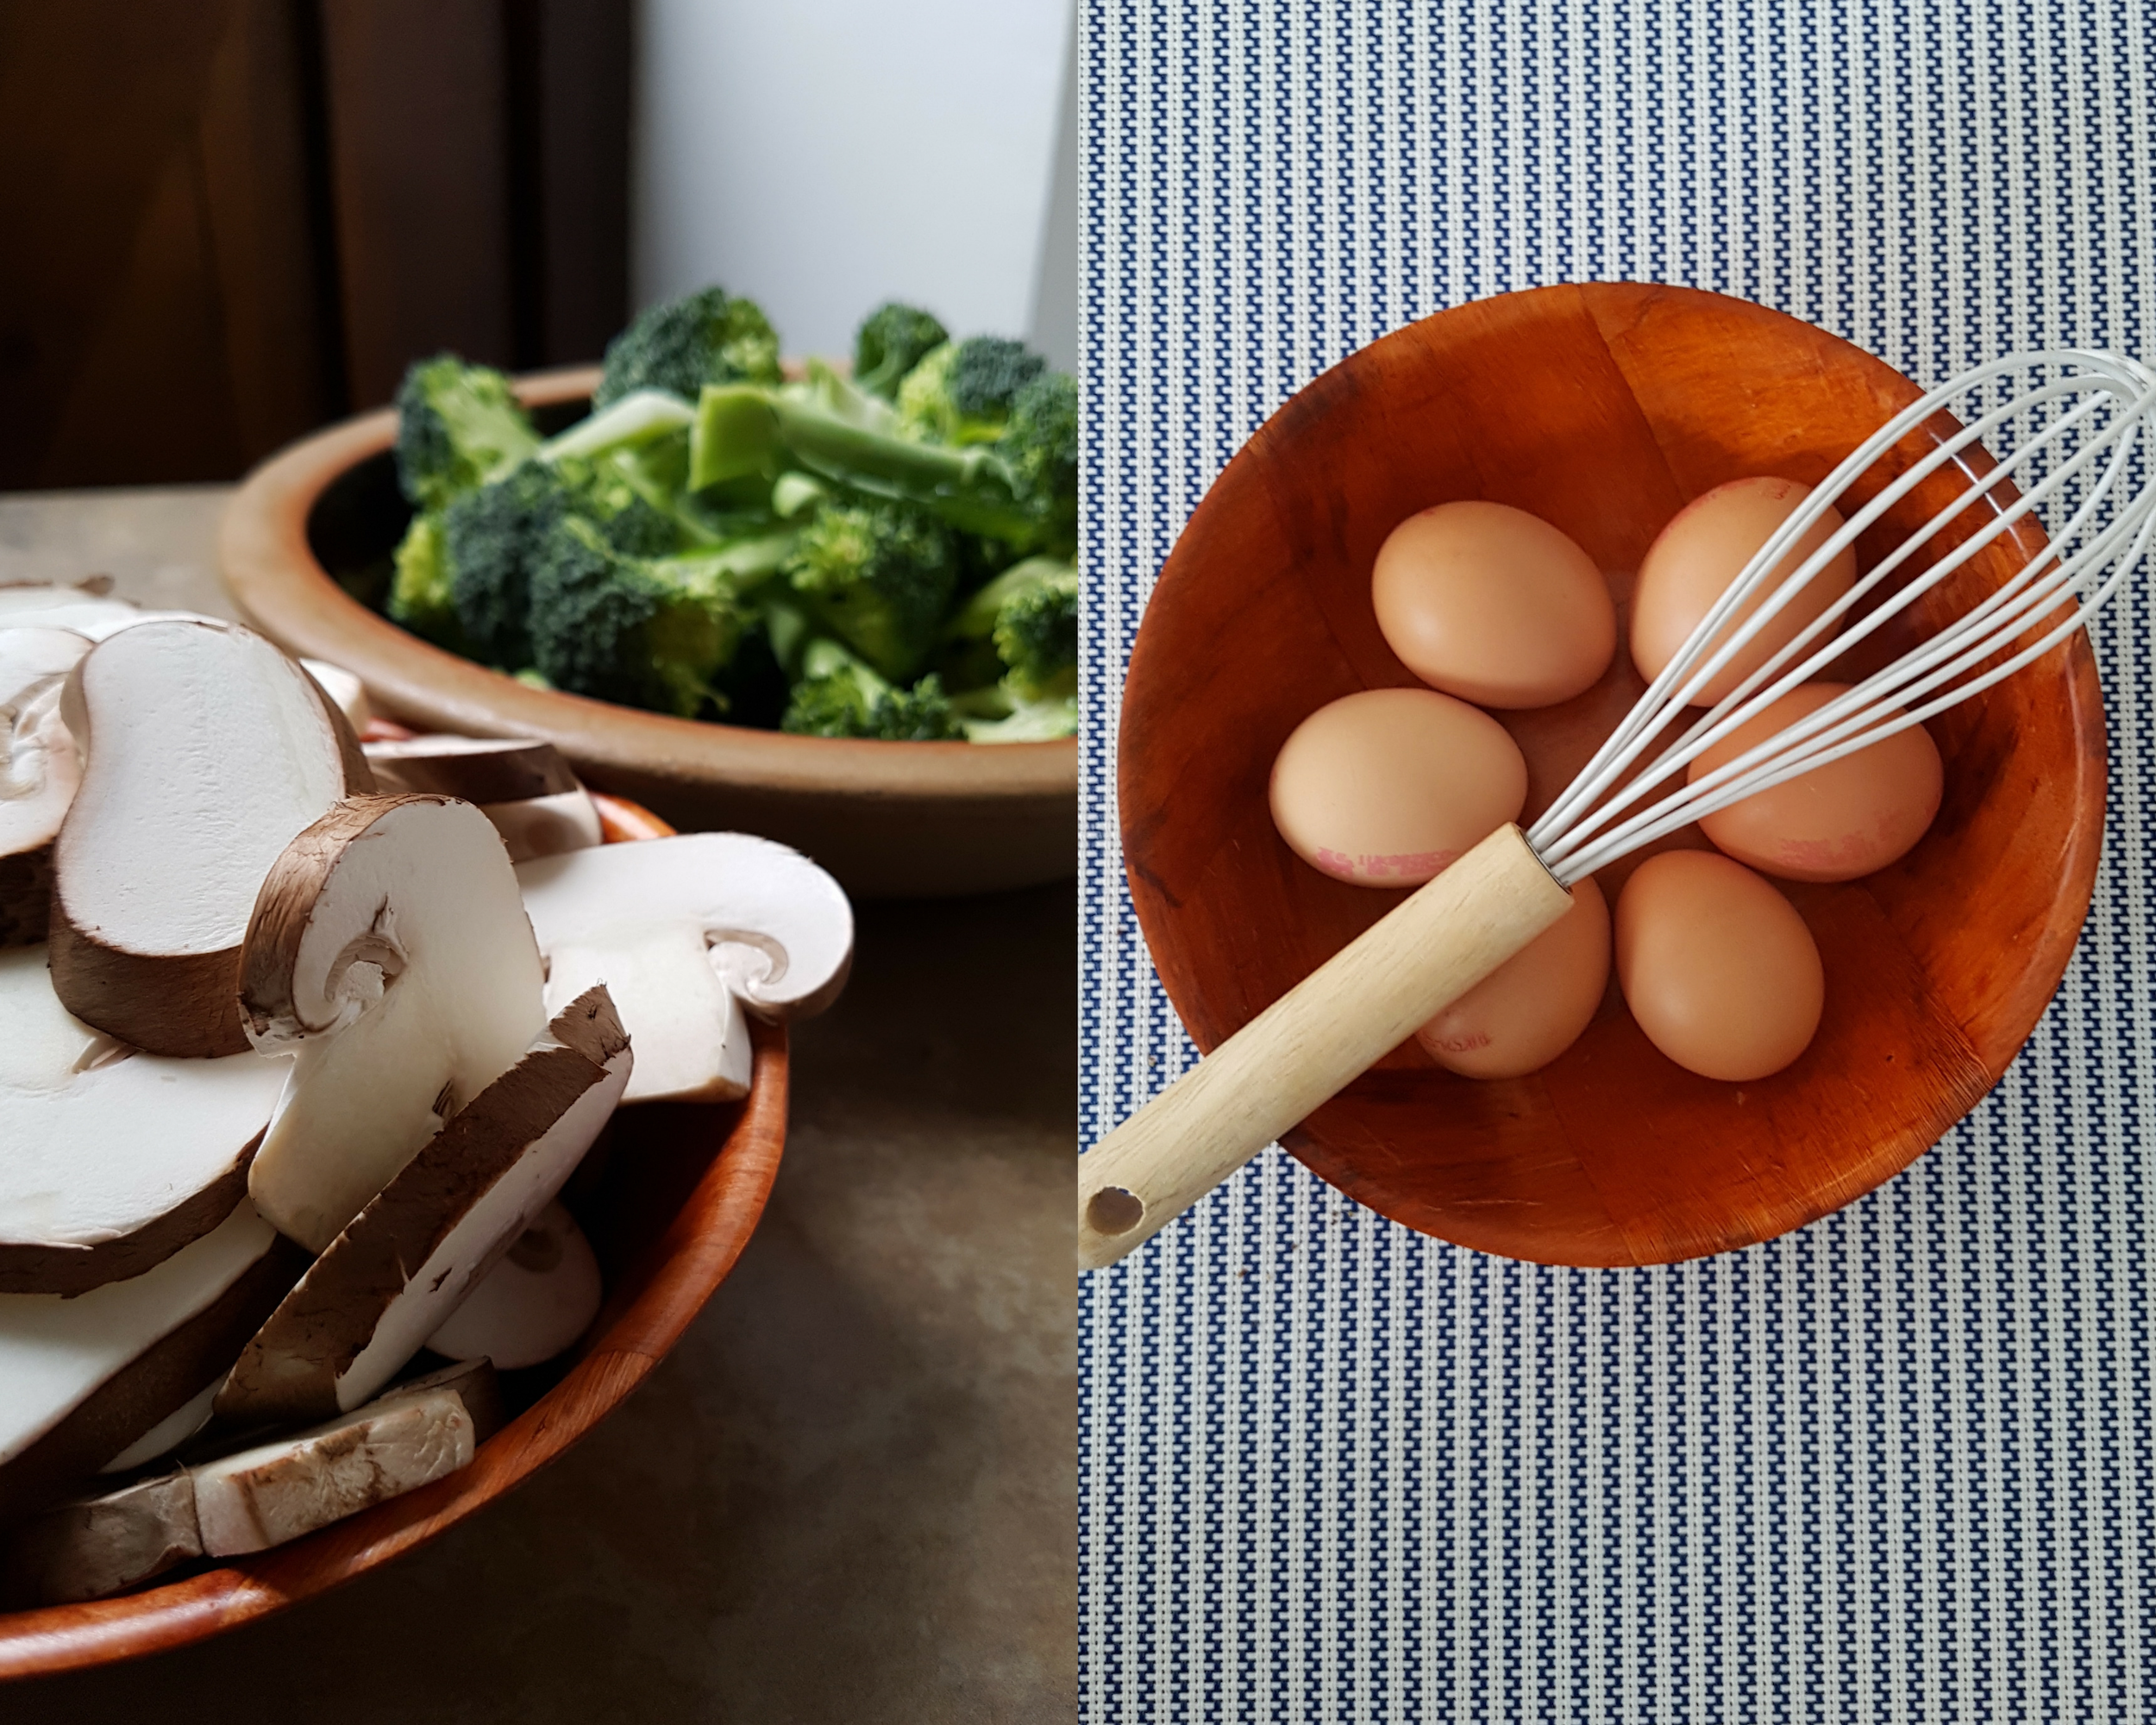 mushrooms-broccoli-eggs.png